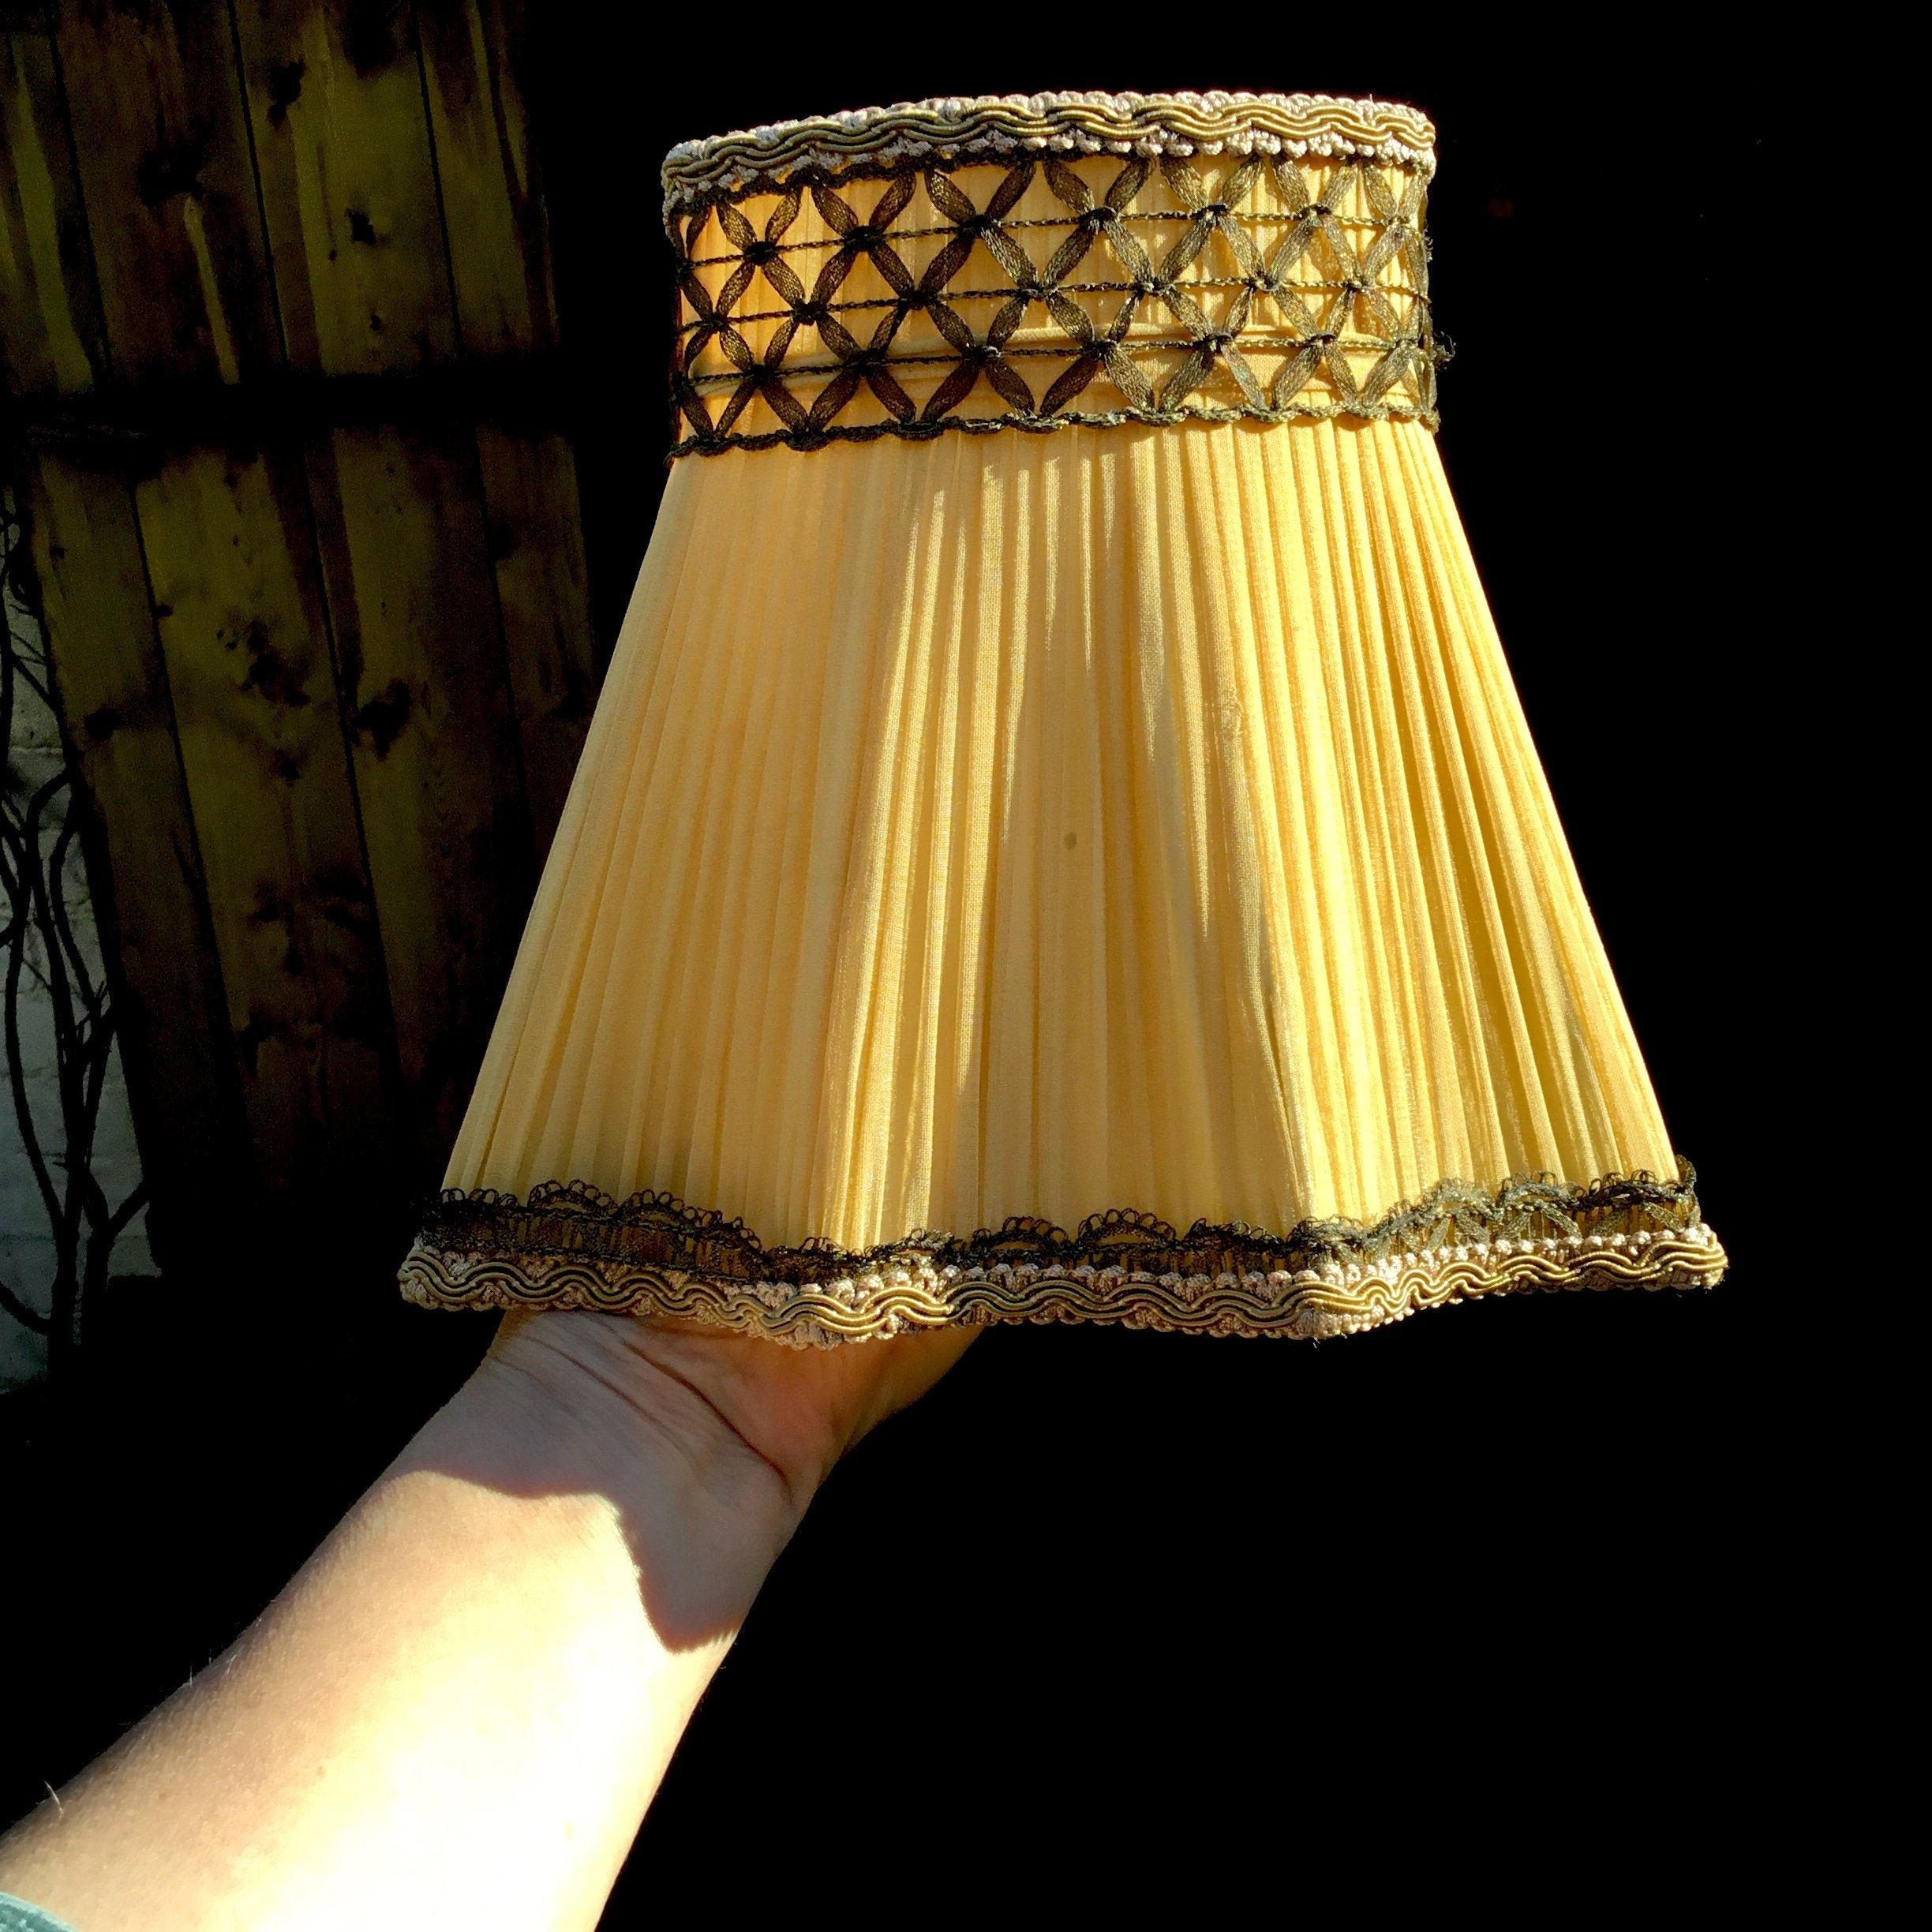 Vintage Lampshade Yellow Pleated Chiffon Silk Gold Brocade Etsy Pleated Fabric Gold Brocade Vintage Lampshades